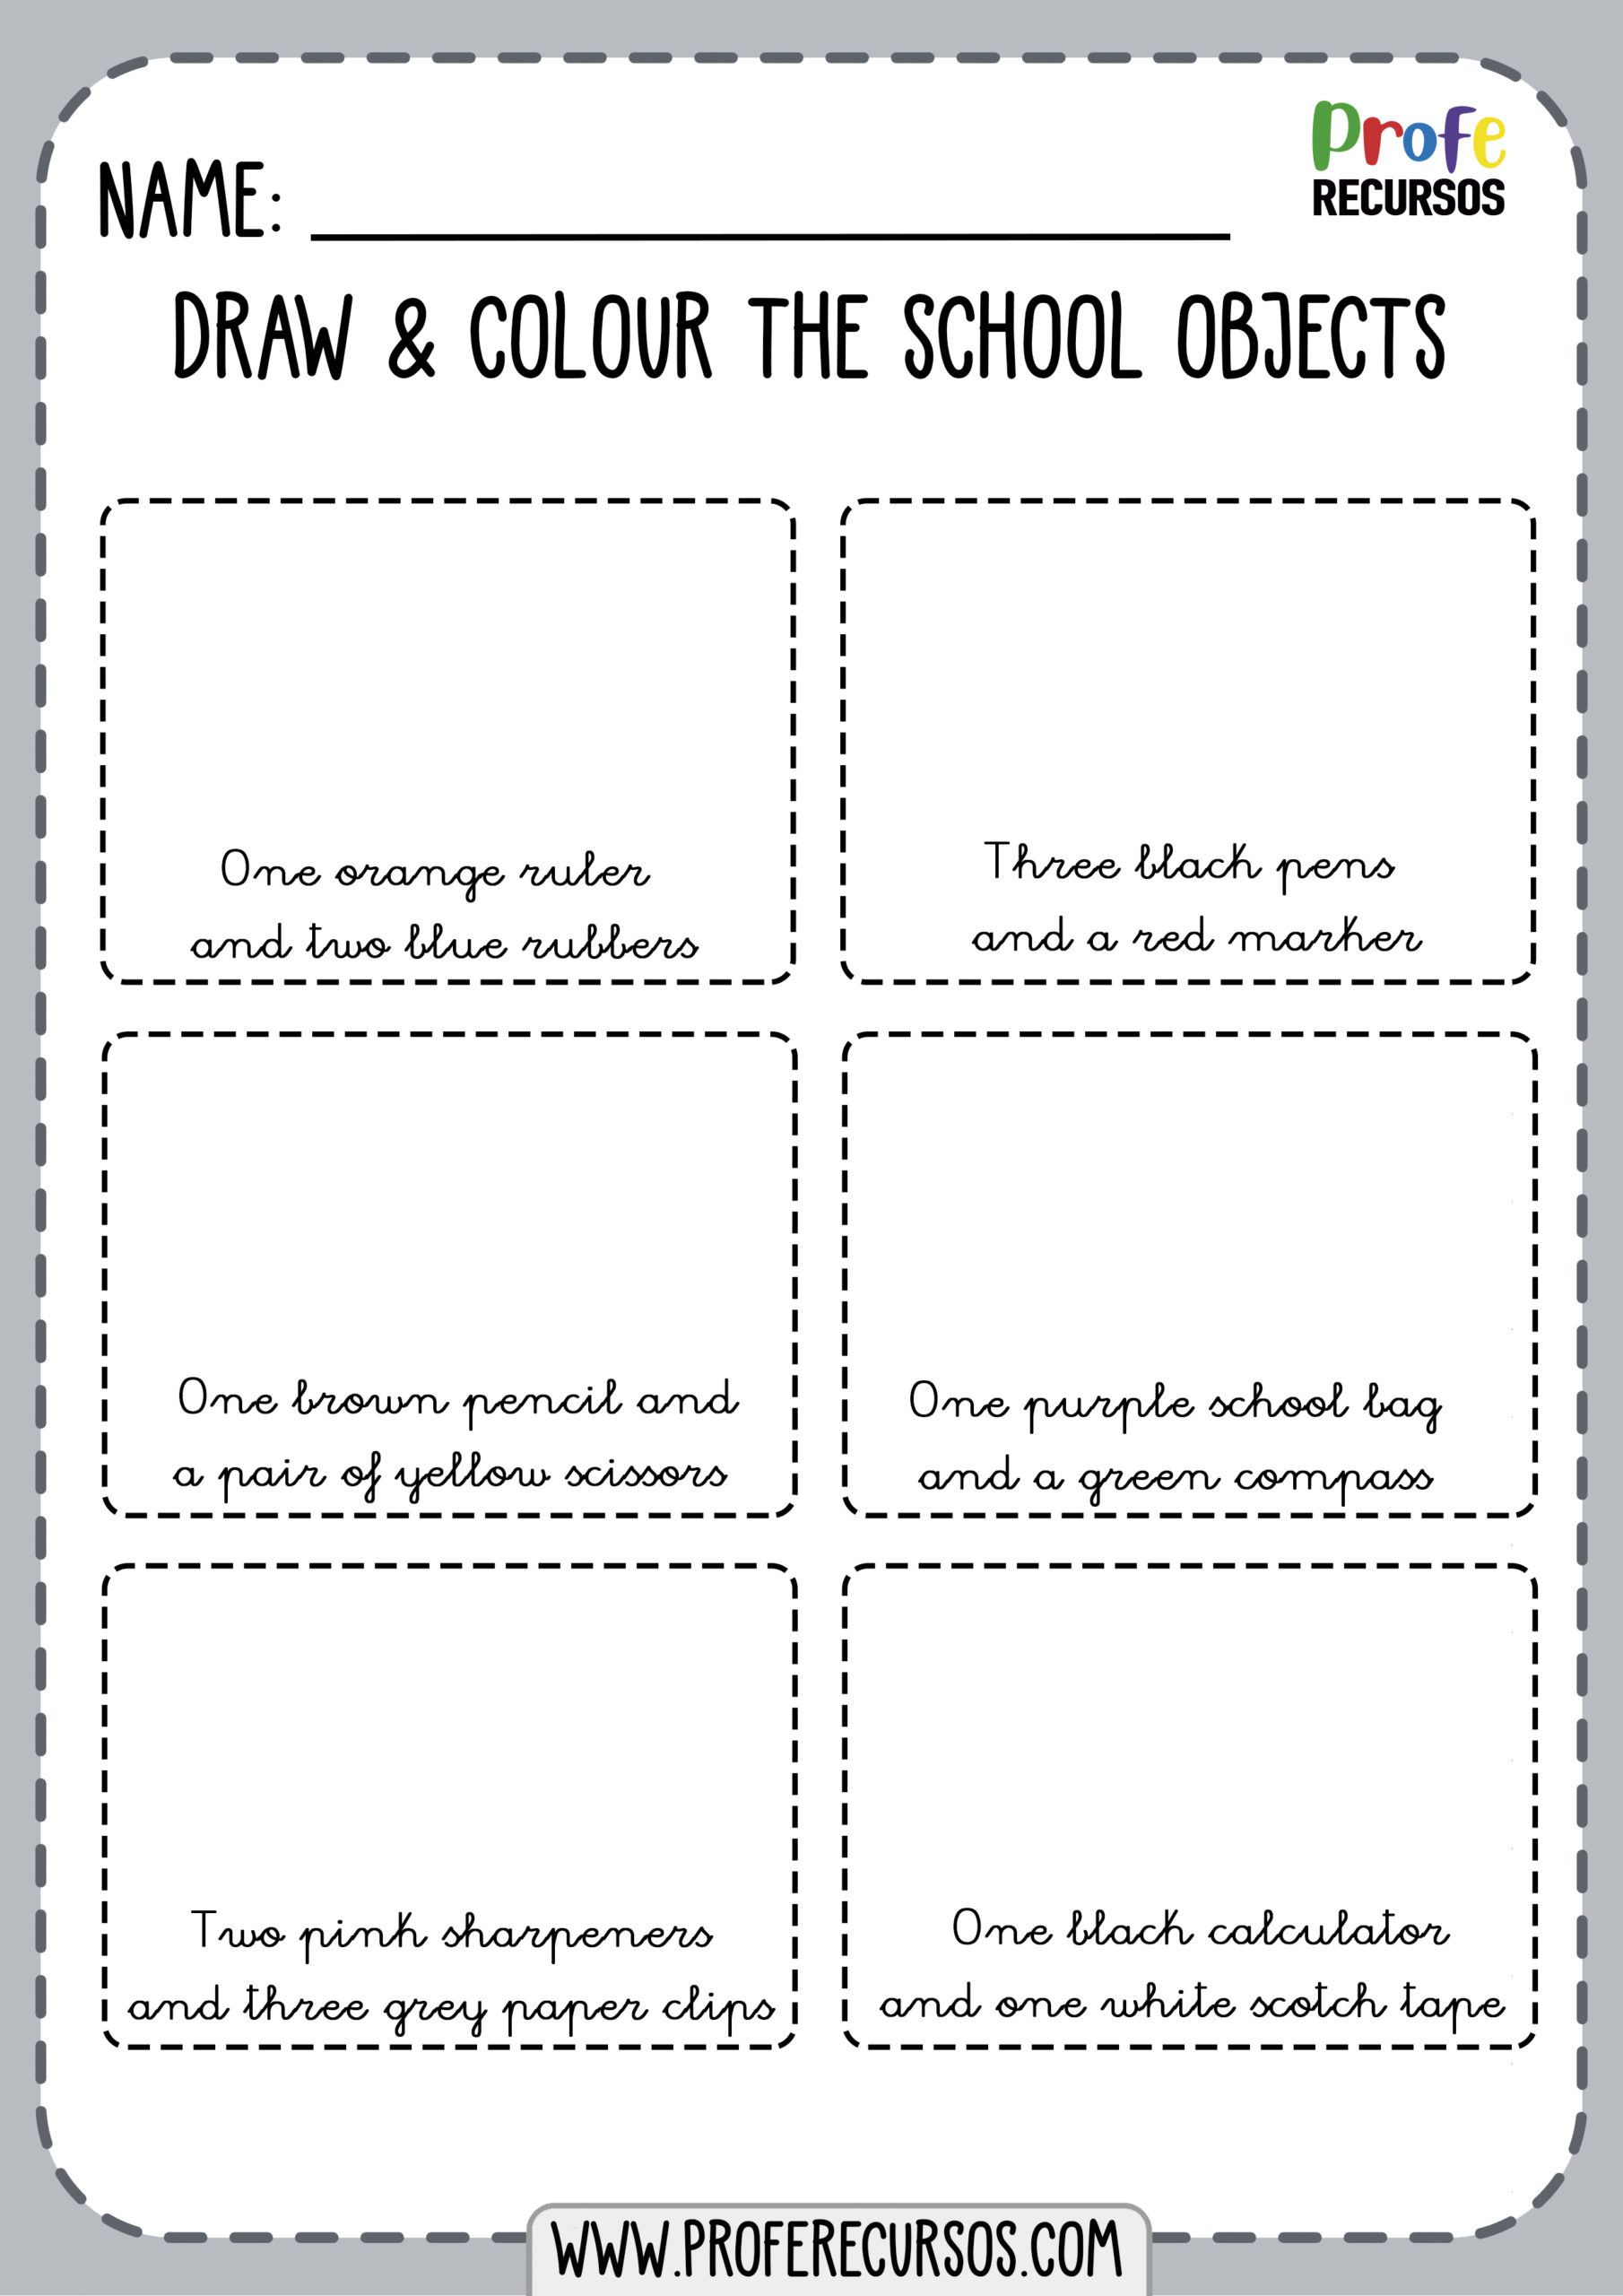 School Objects Worksheet1